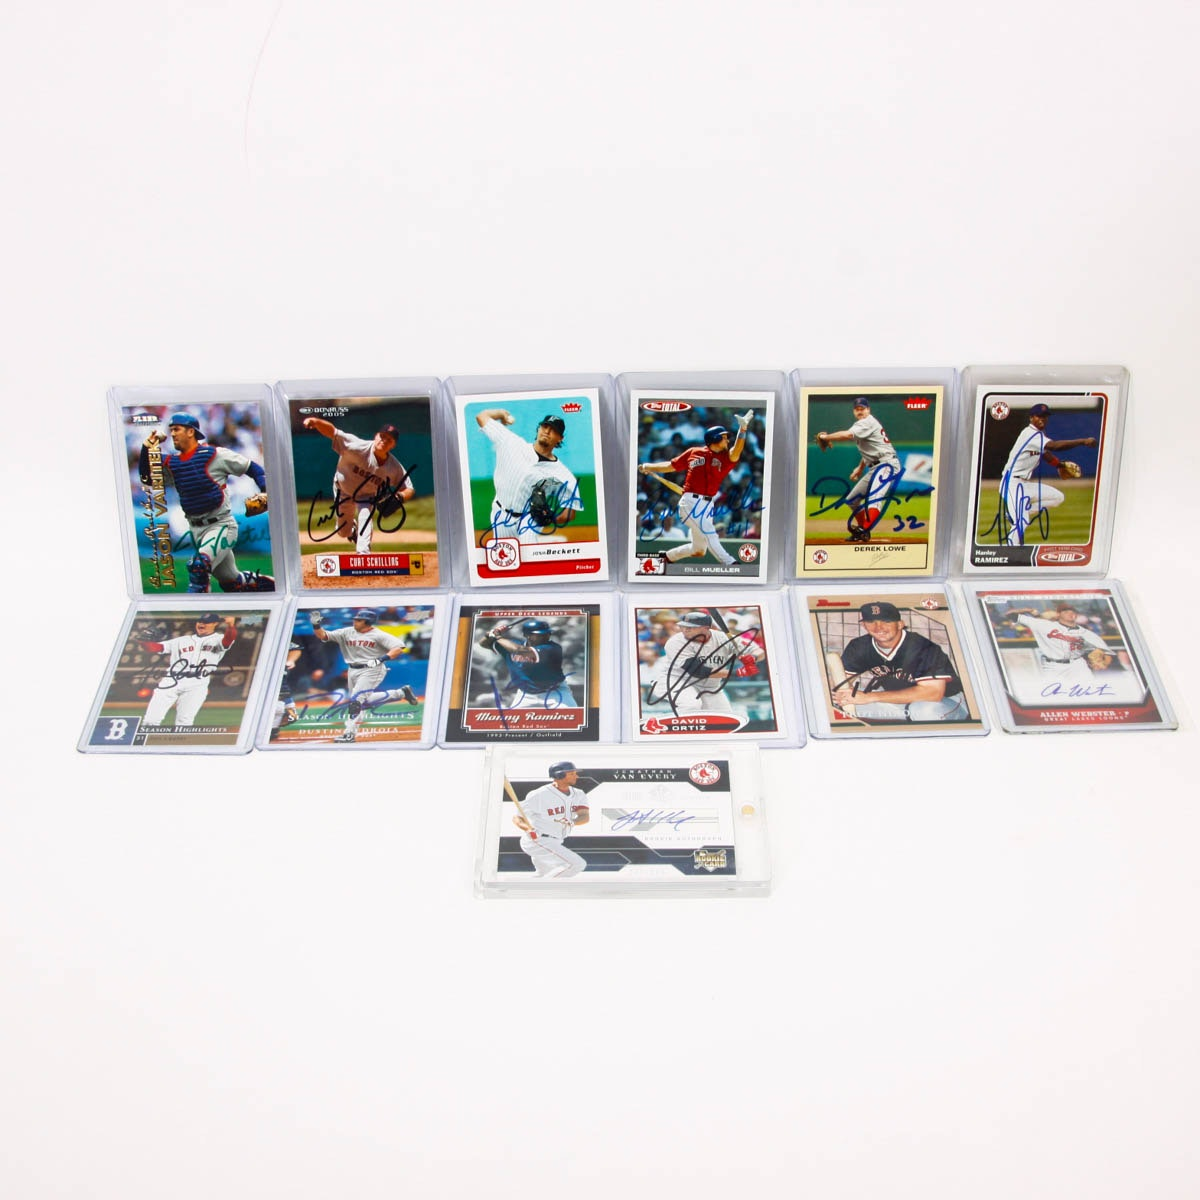 Boston Red Sox Autograph Collection with David Ortiz and Jason Varitek